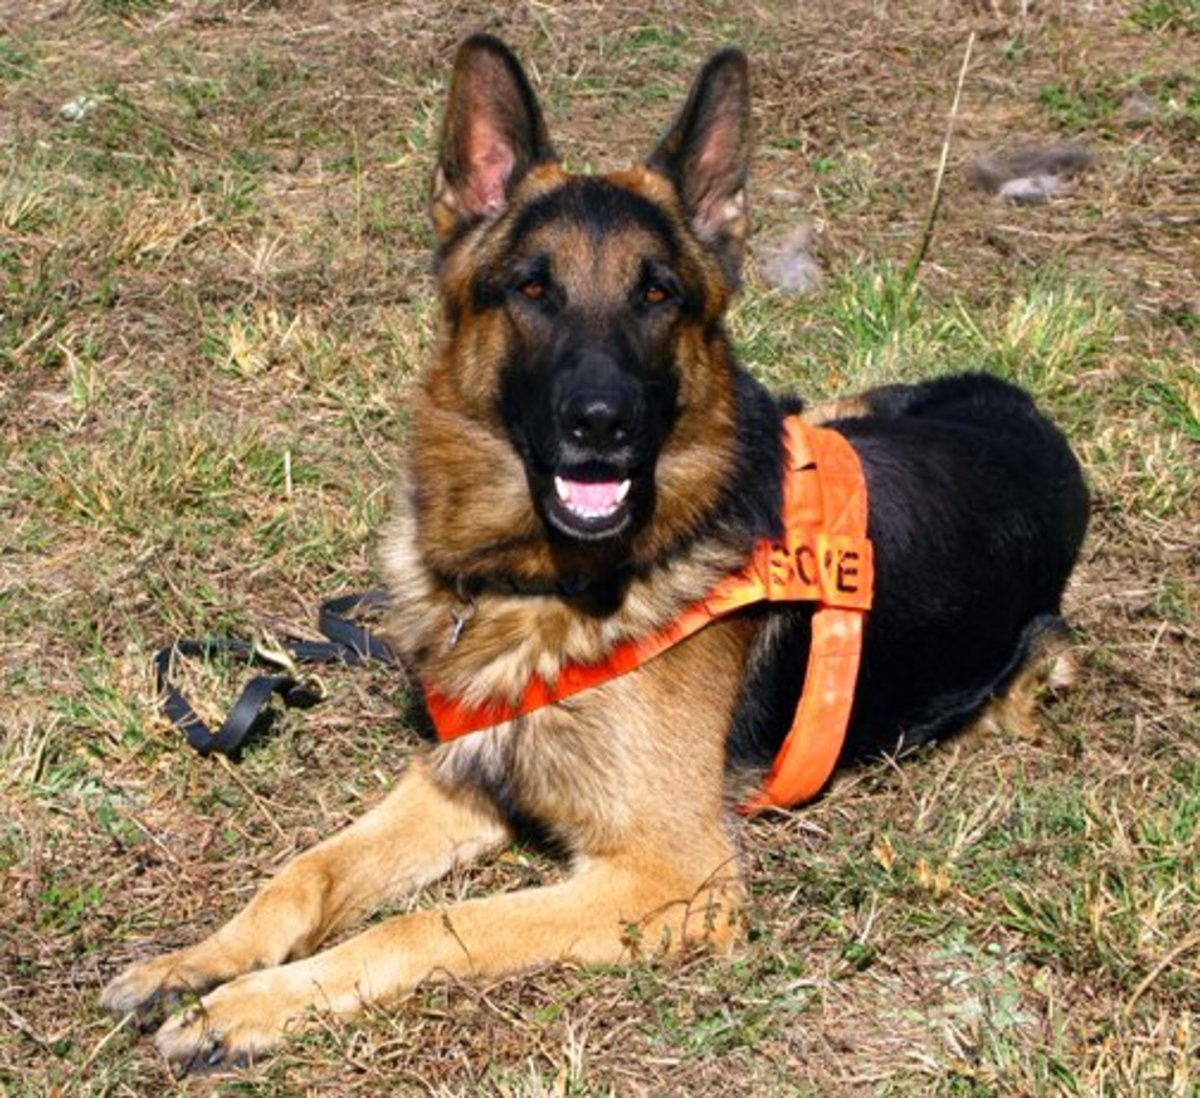 German Shepherd Dogs are popular but often not the best dog to adopt.